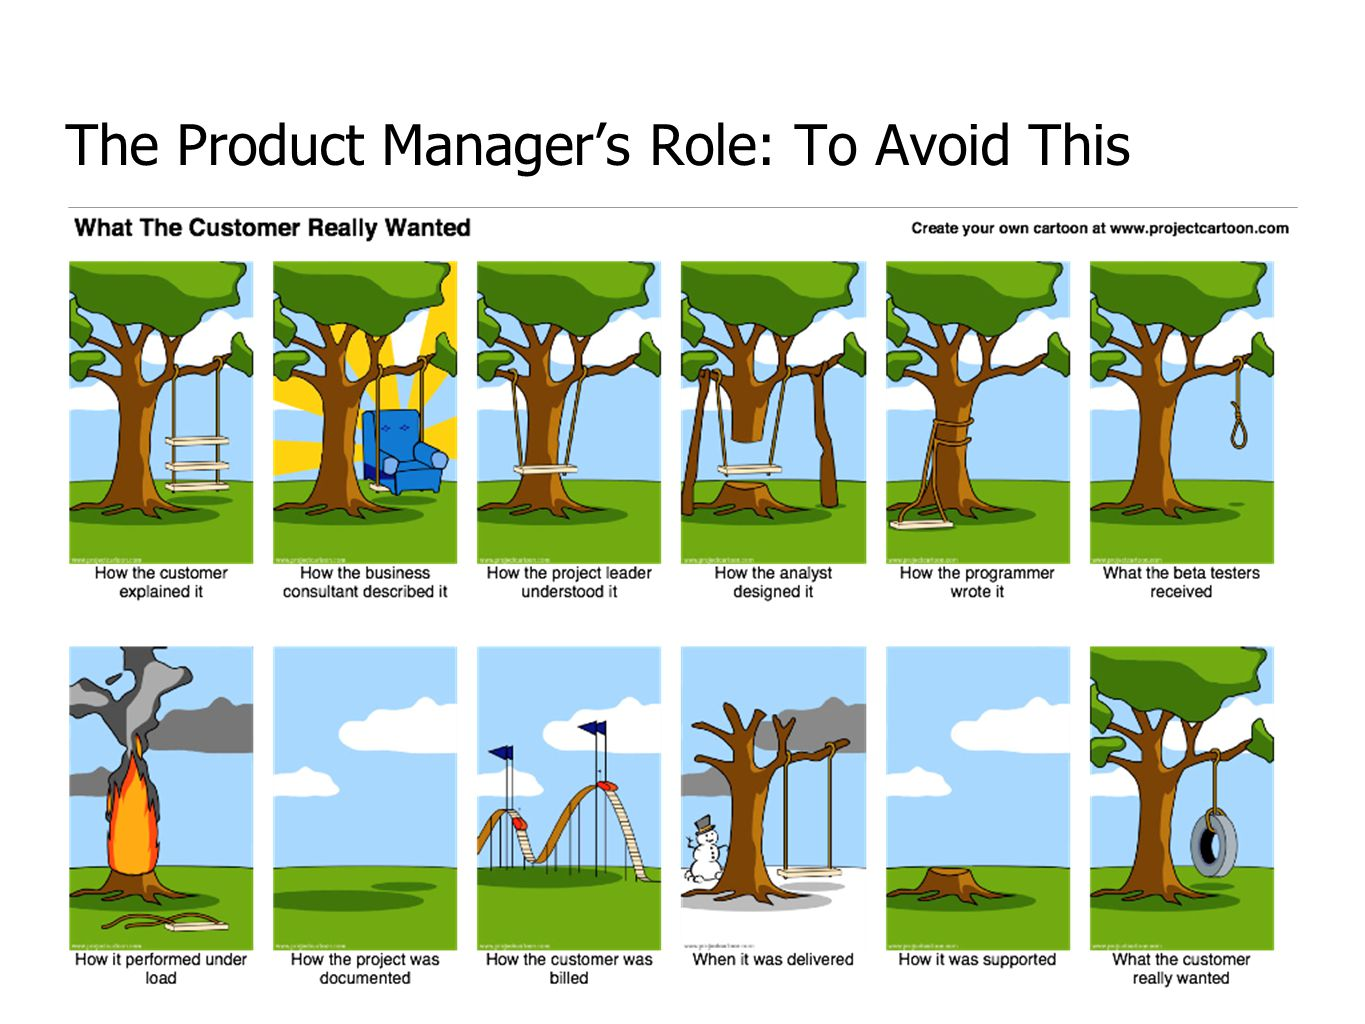 The Product Manager's Role: To Avoid This